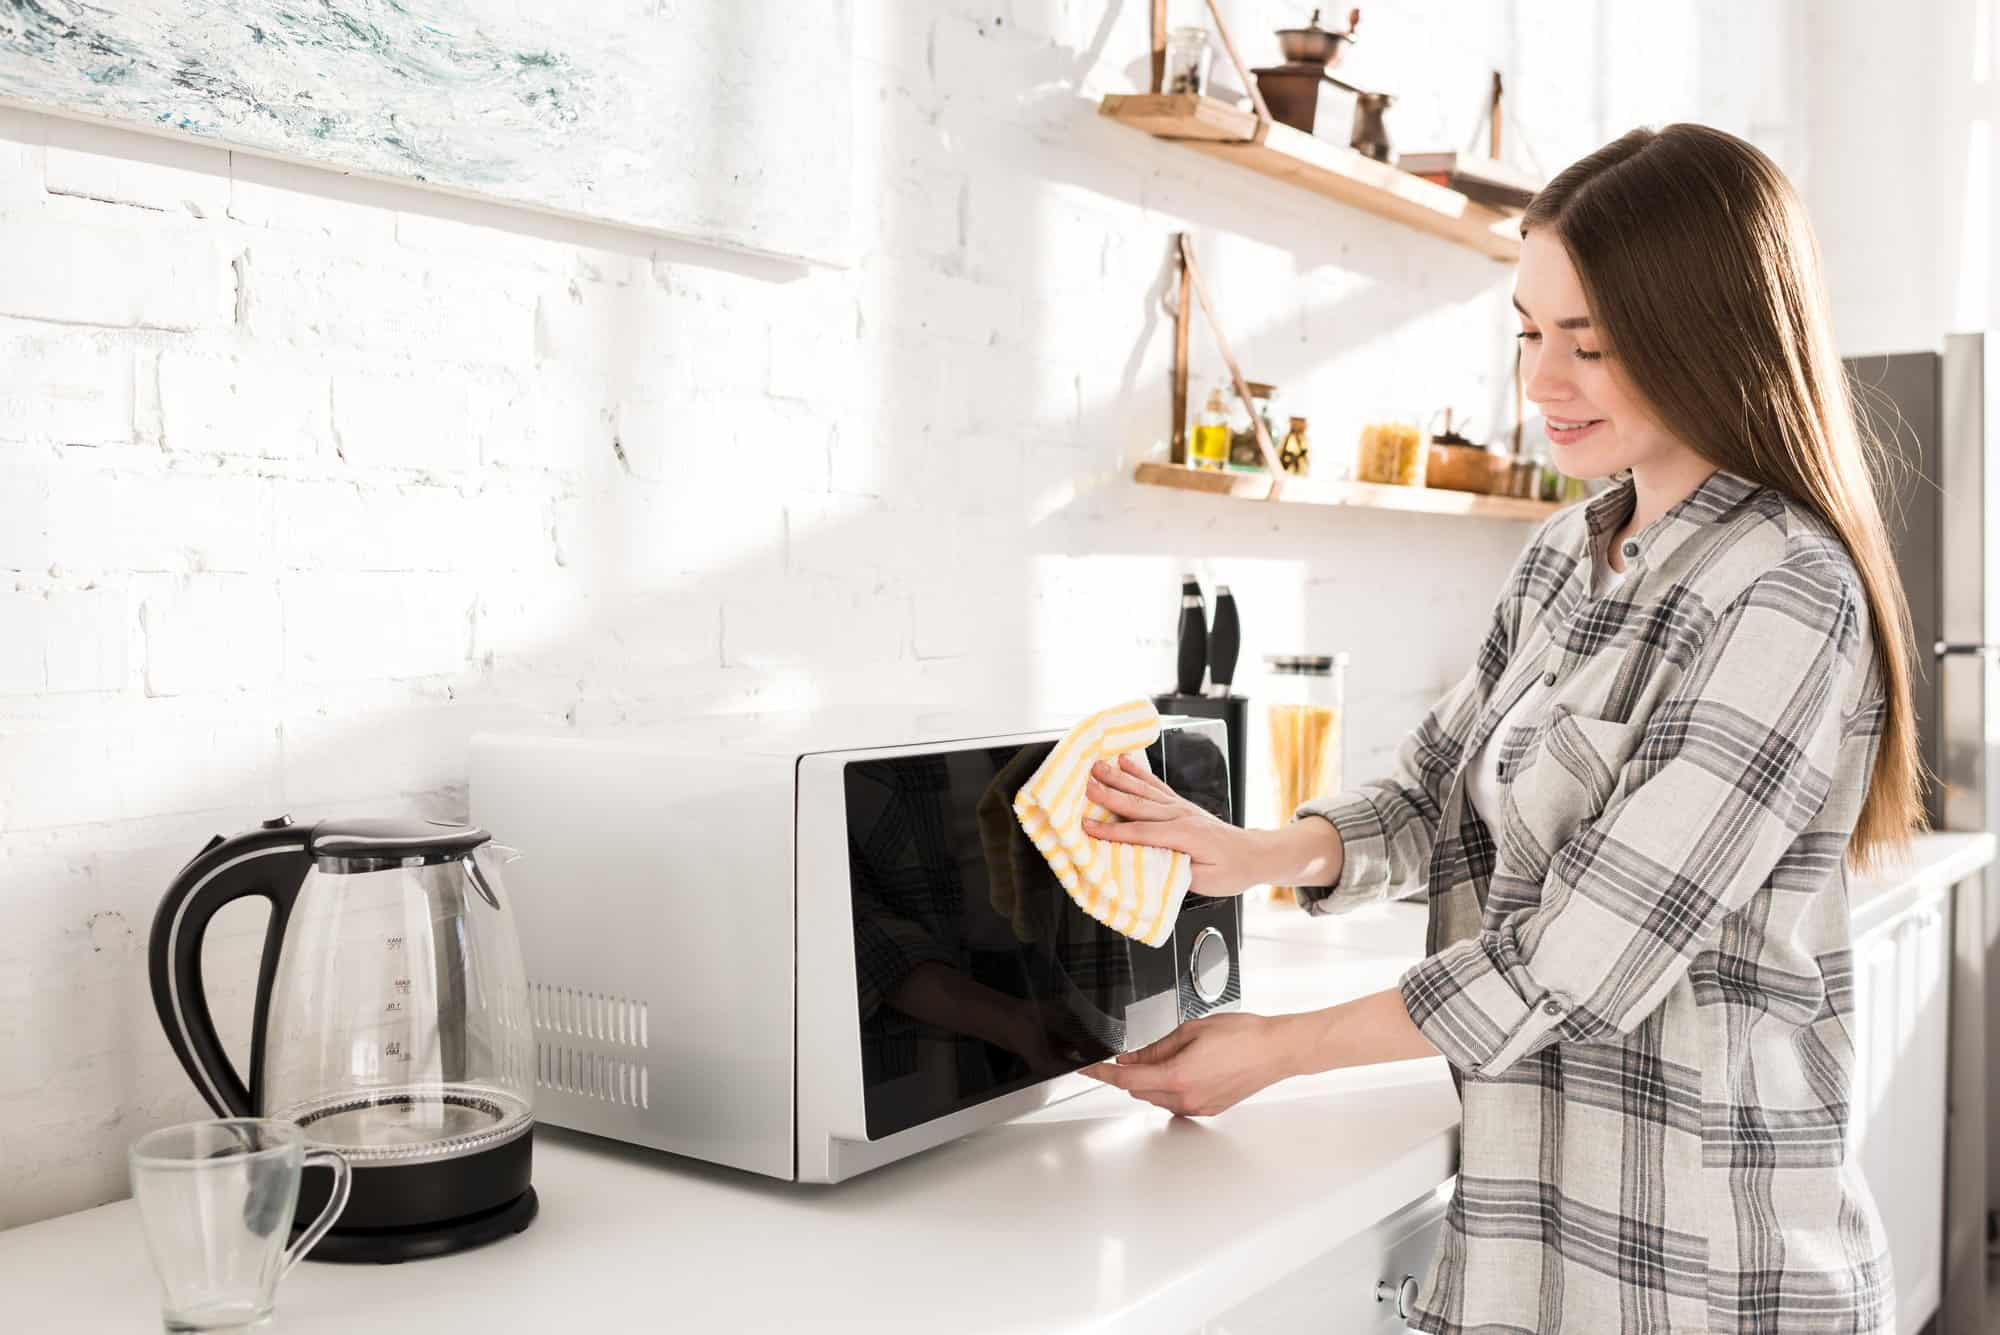 girl finished cleaning a microwave looking happy